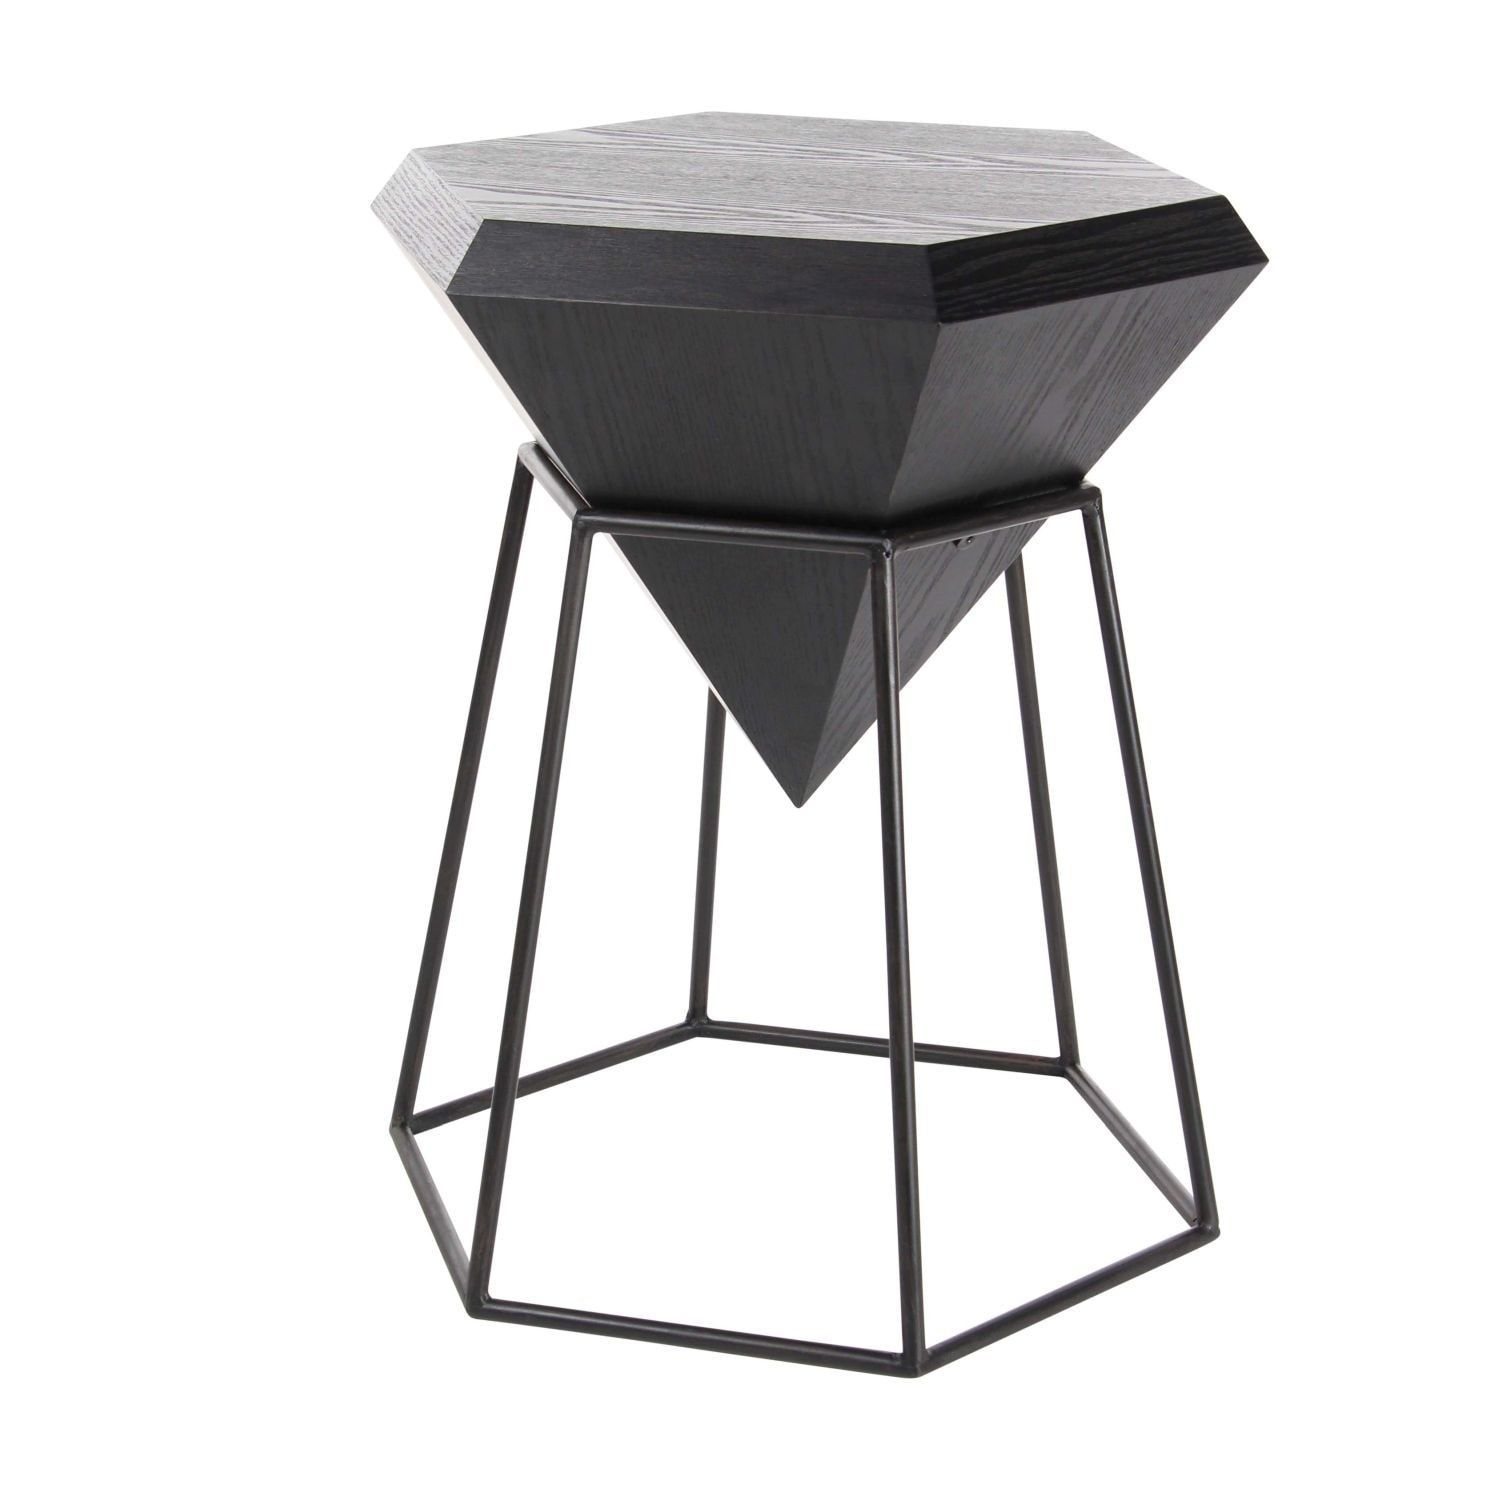 Studio 350 Wood Metal Diamond Accent Table 20 Inches Wide 25 High